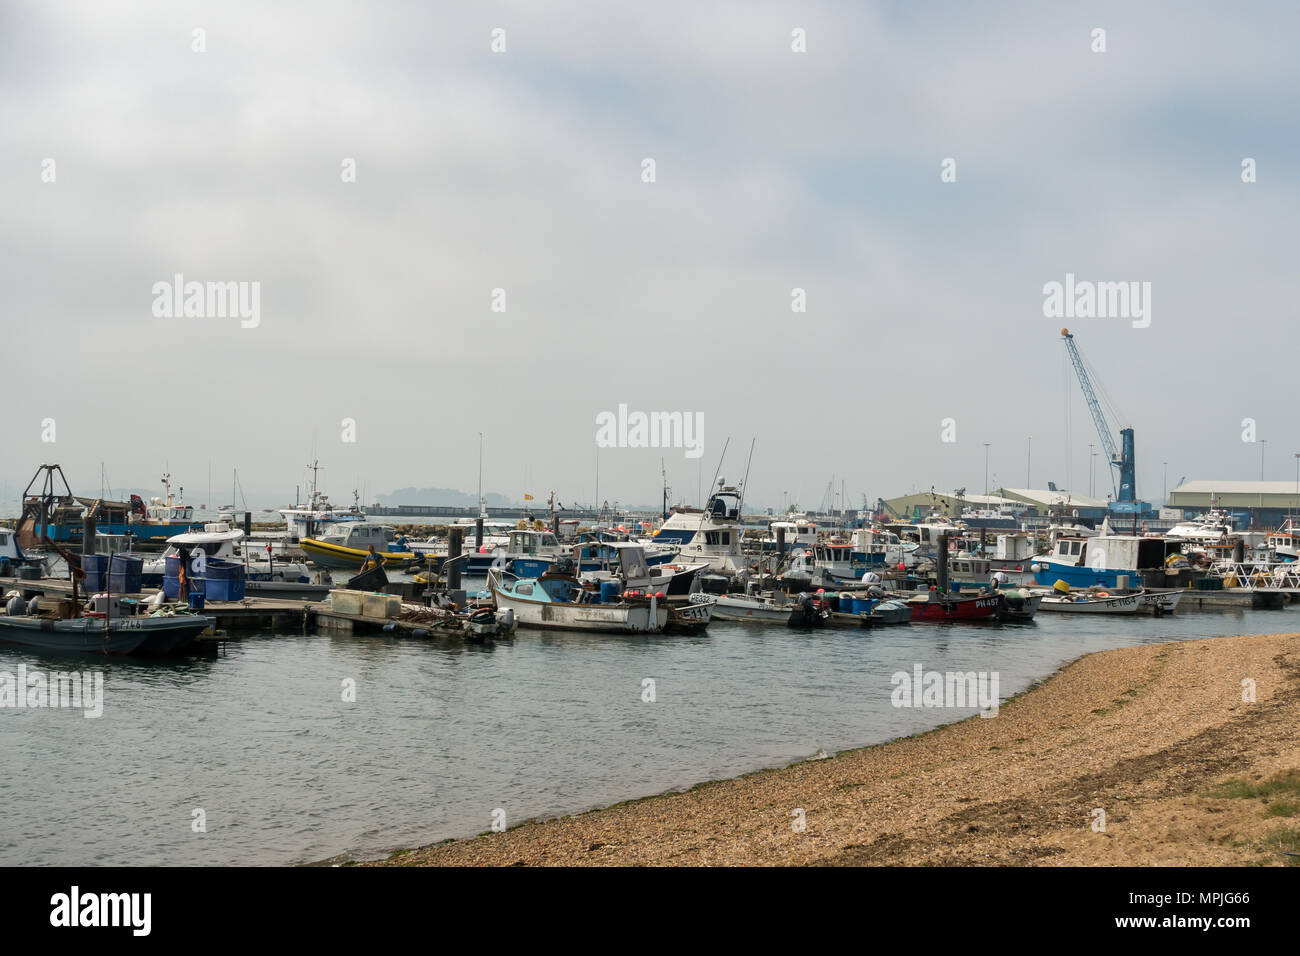 View of Poole harbour, Dorset, England United Kingdom - Stock Image